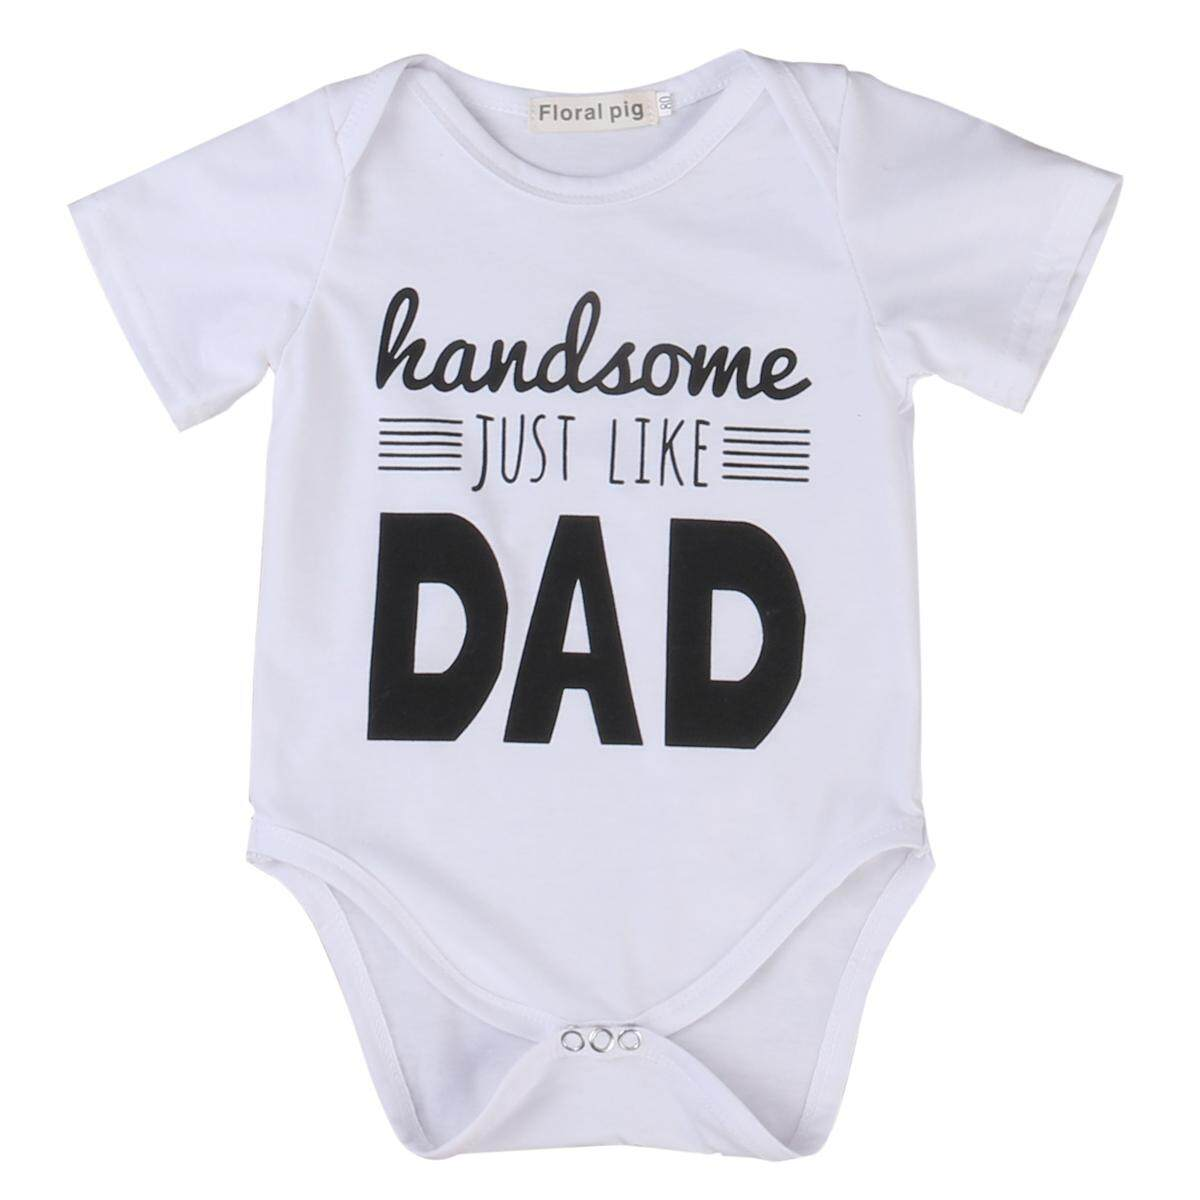 349b9cbc13c2 Boys Body Suits for sale - Suits for Baby Boys online brands